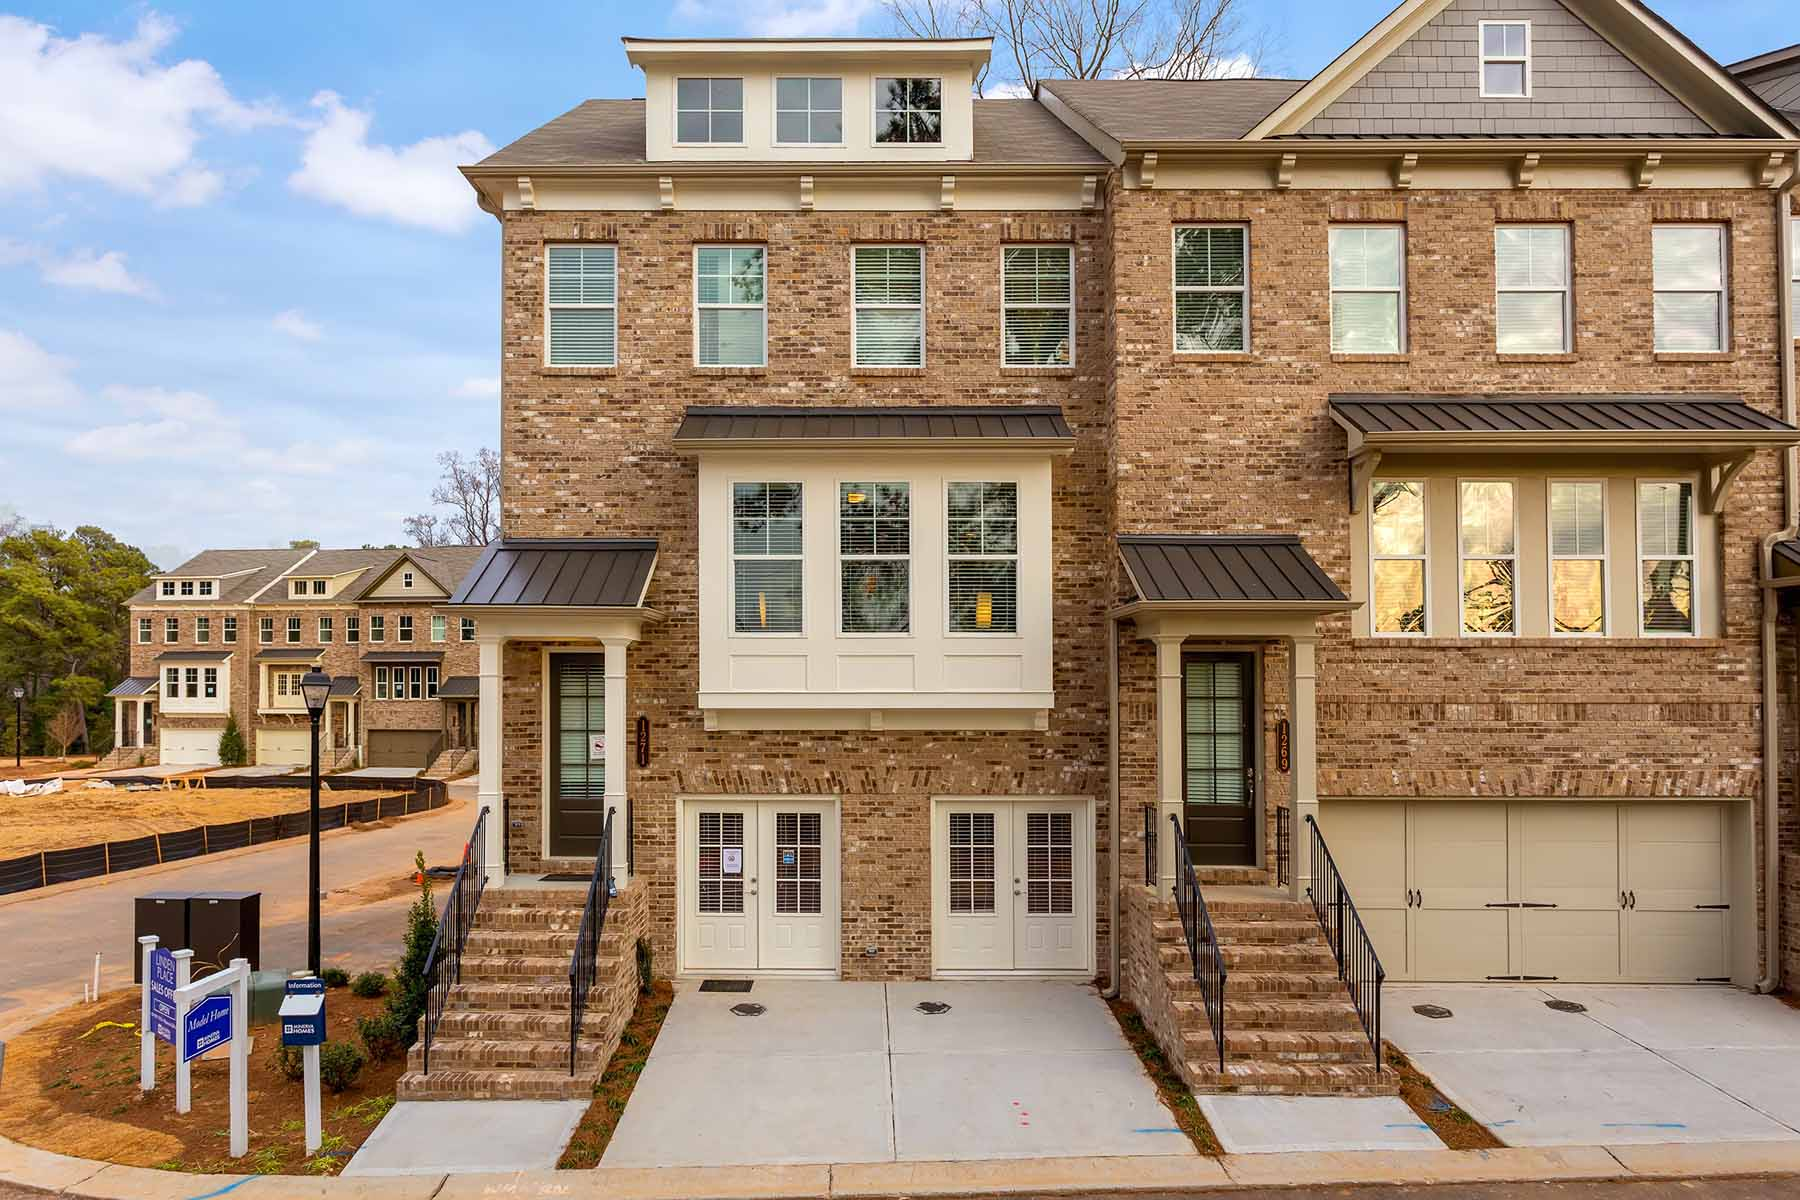 Townhouse for Sale at Linden Place offers unmatched convenience, lifestyle and luxury townhome living! 1297 Linden Court No. 13 Atlanta, Georgia 30329 United States